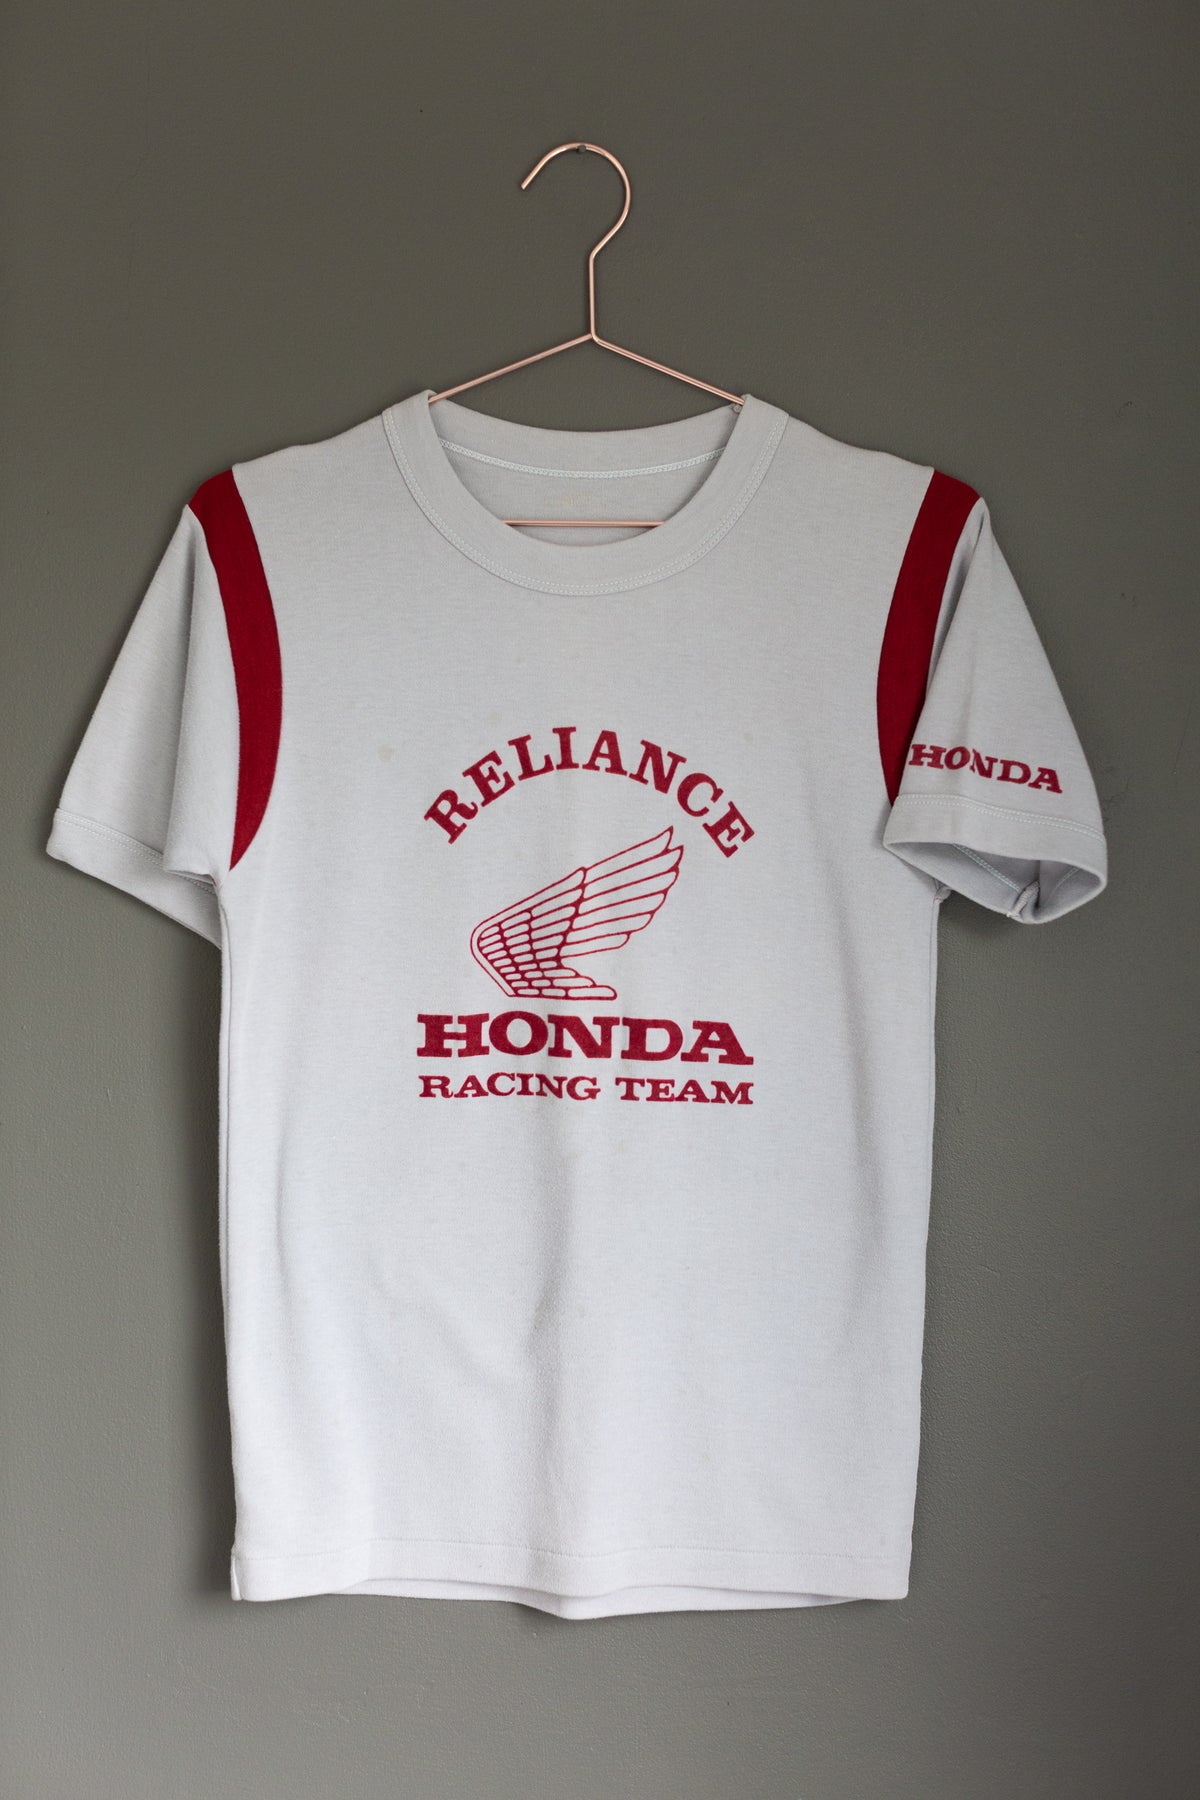 Image of Vintage Honda Racing Team Shirt